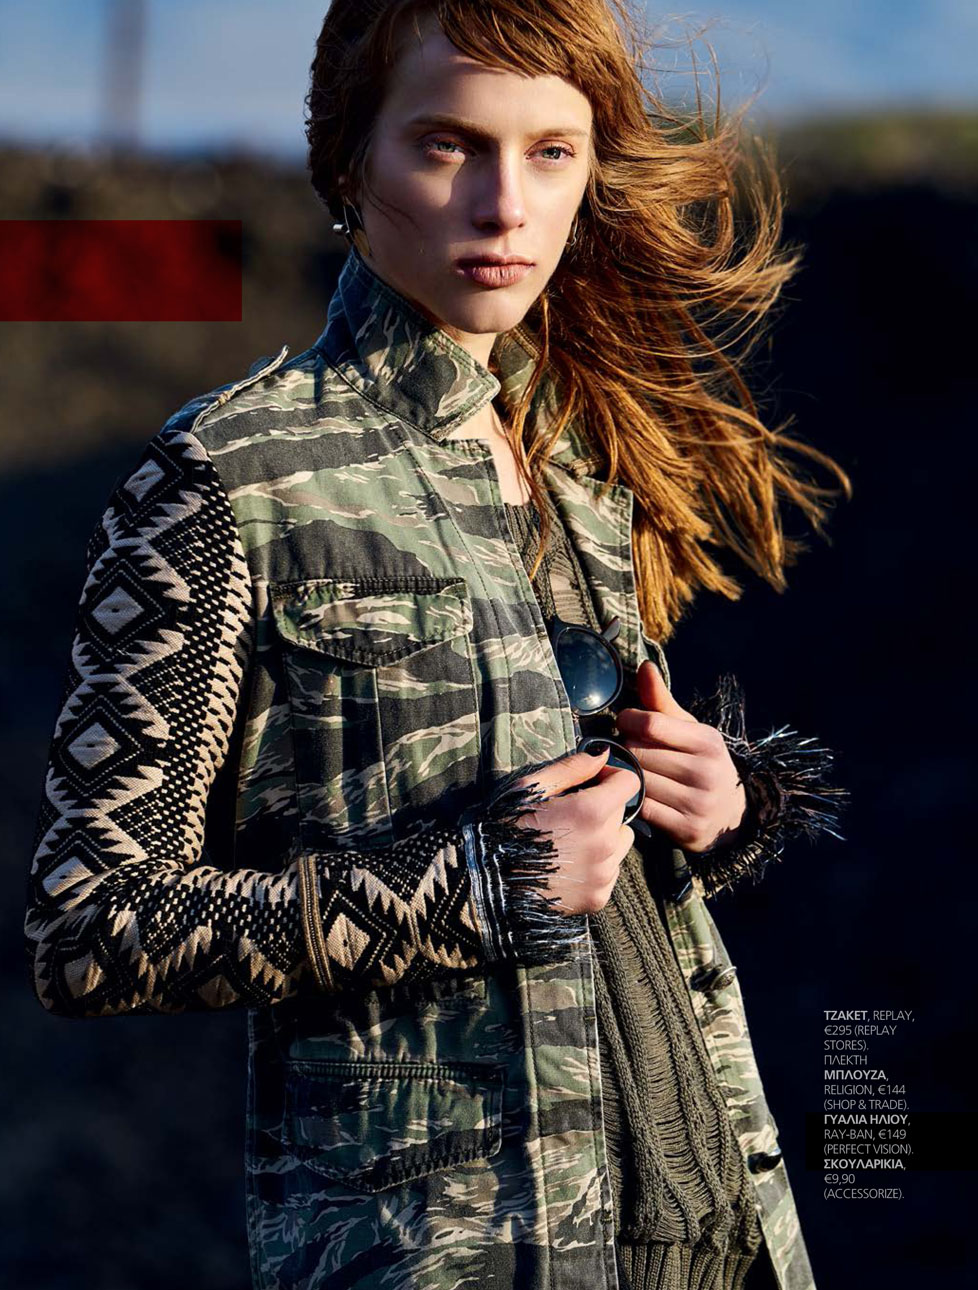 Daria winning the battle of style in military clothing for Mirror Mag.